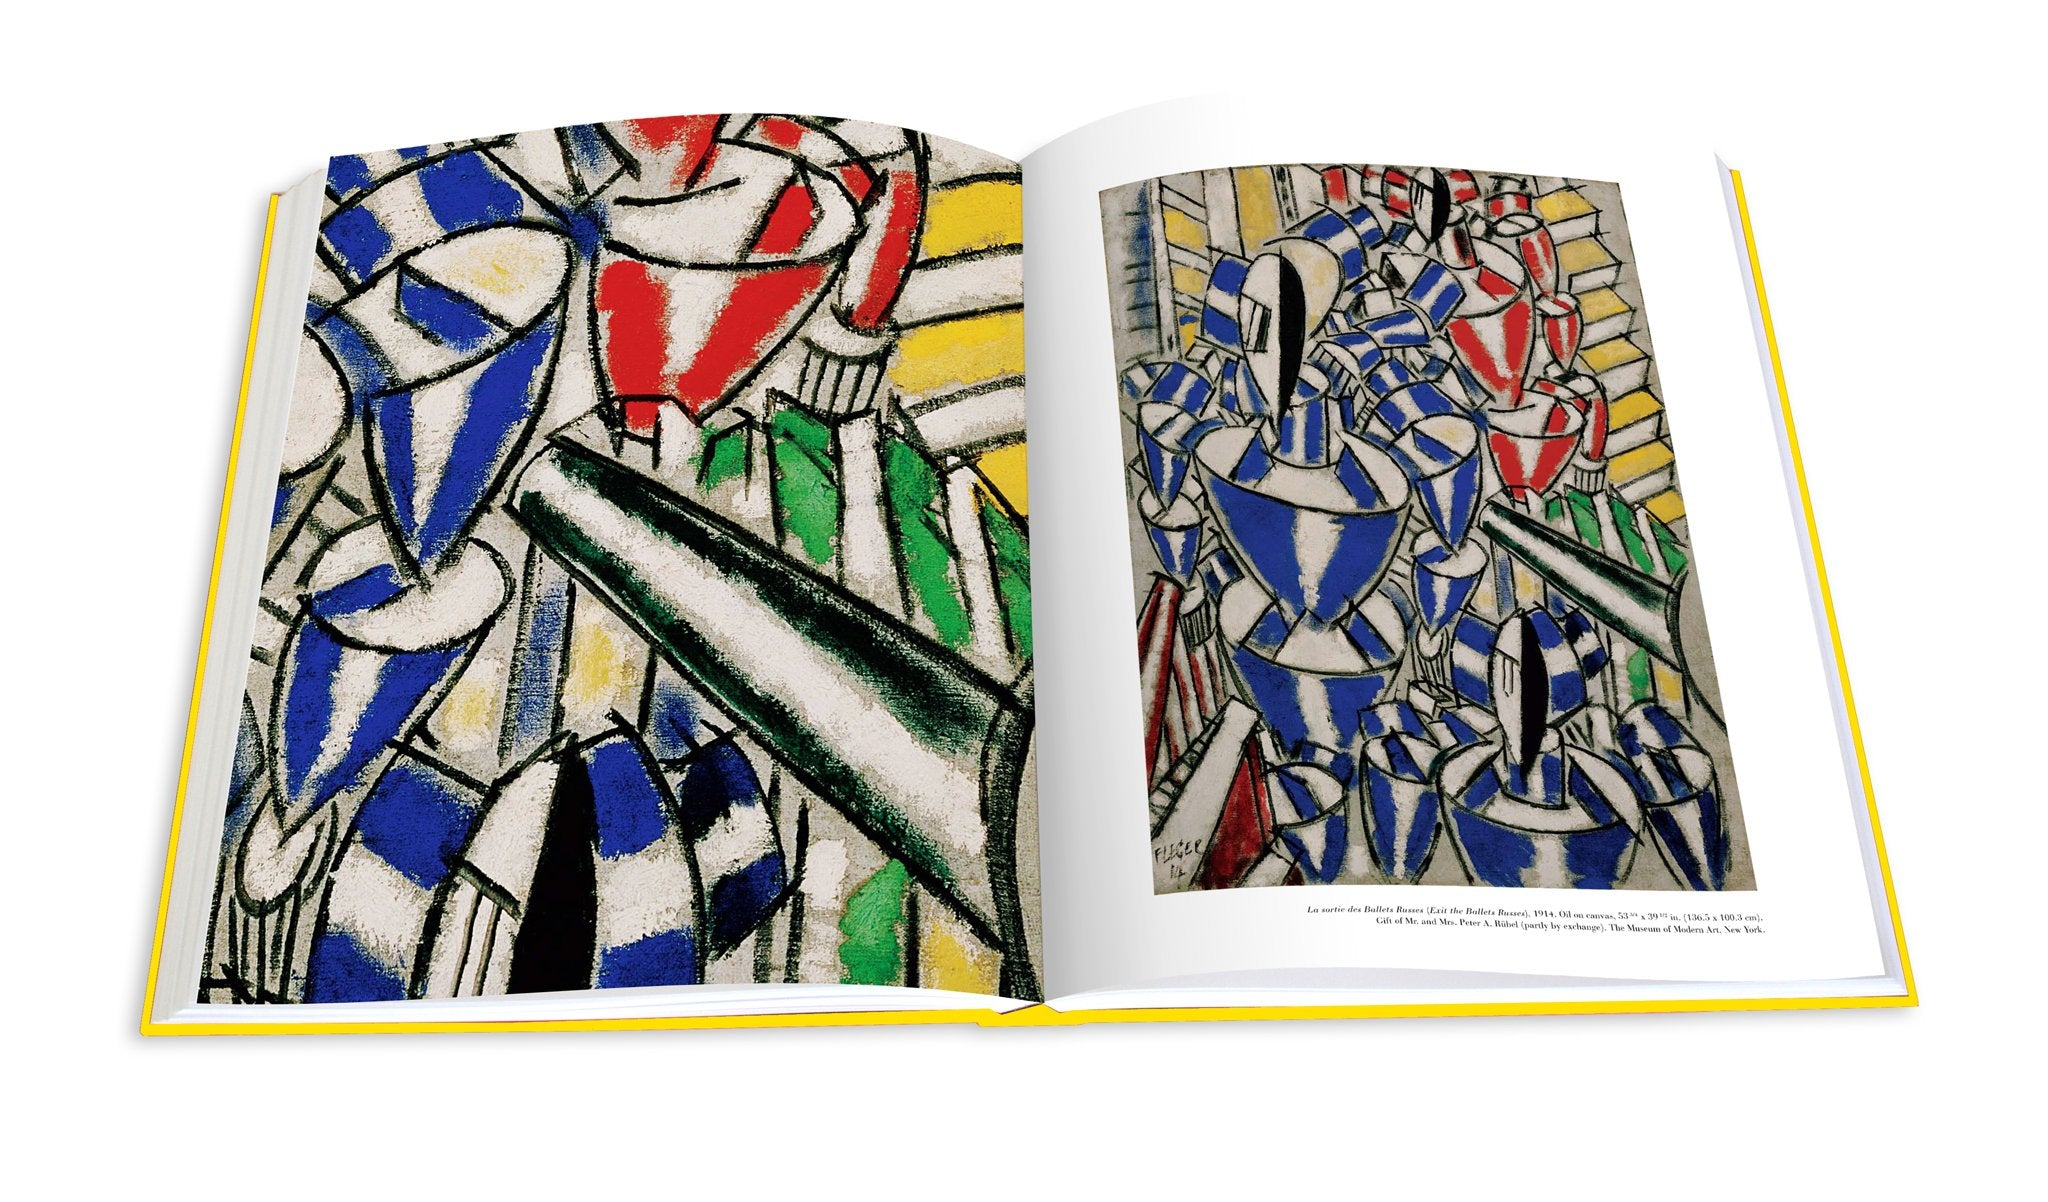 Fernand Leger: A Survey Of Iconic Works - Assouline